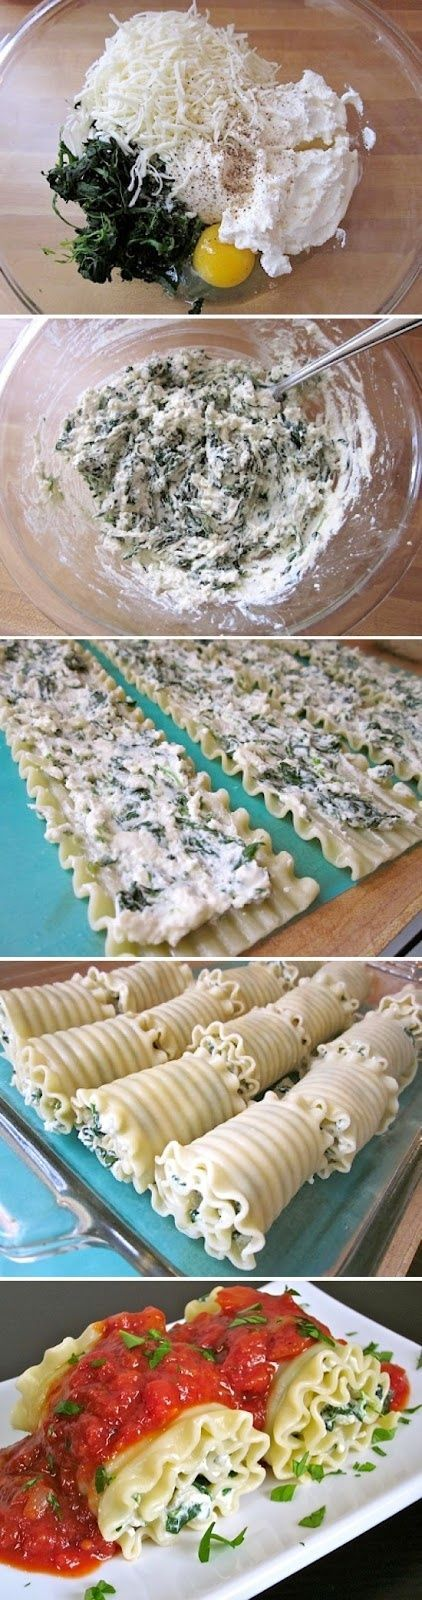 Skinny Spinach Lasagna Rolls: so much easier to serve than a full pan lasagna. Of course my boys need meat in their meals so I added ground venison to each roll. Yum!